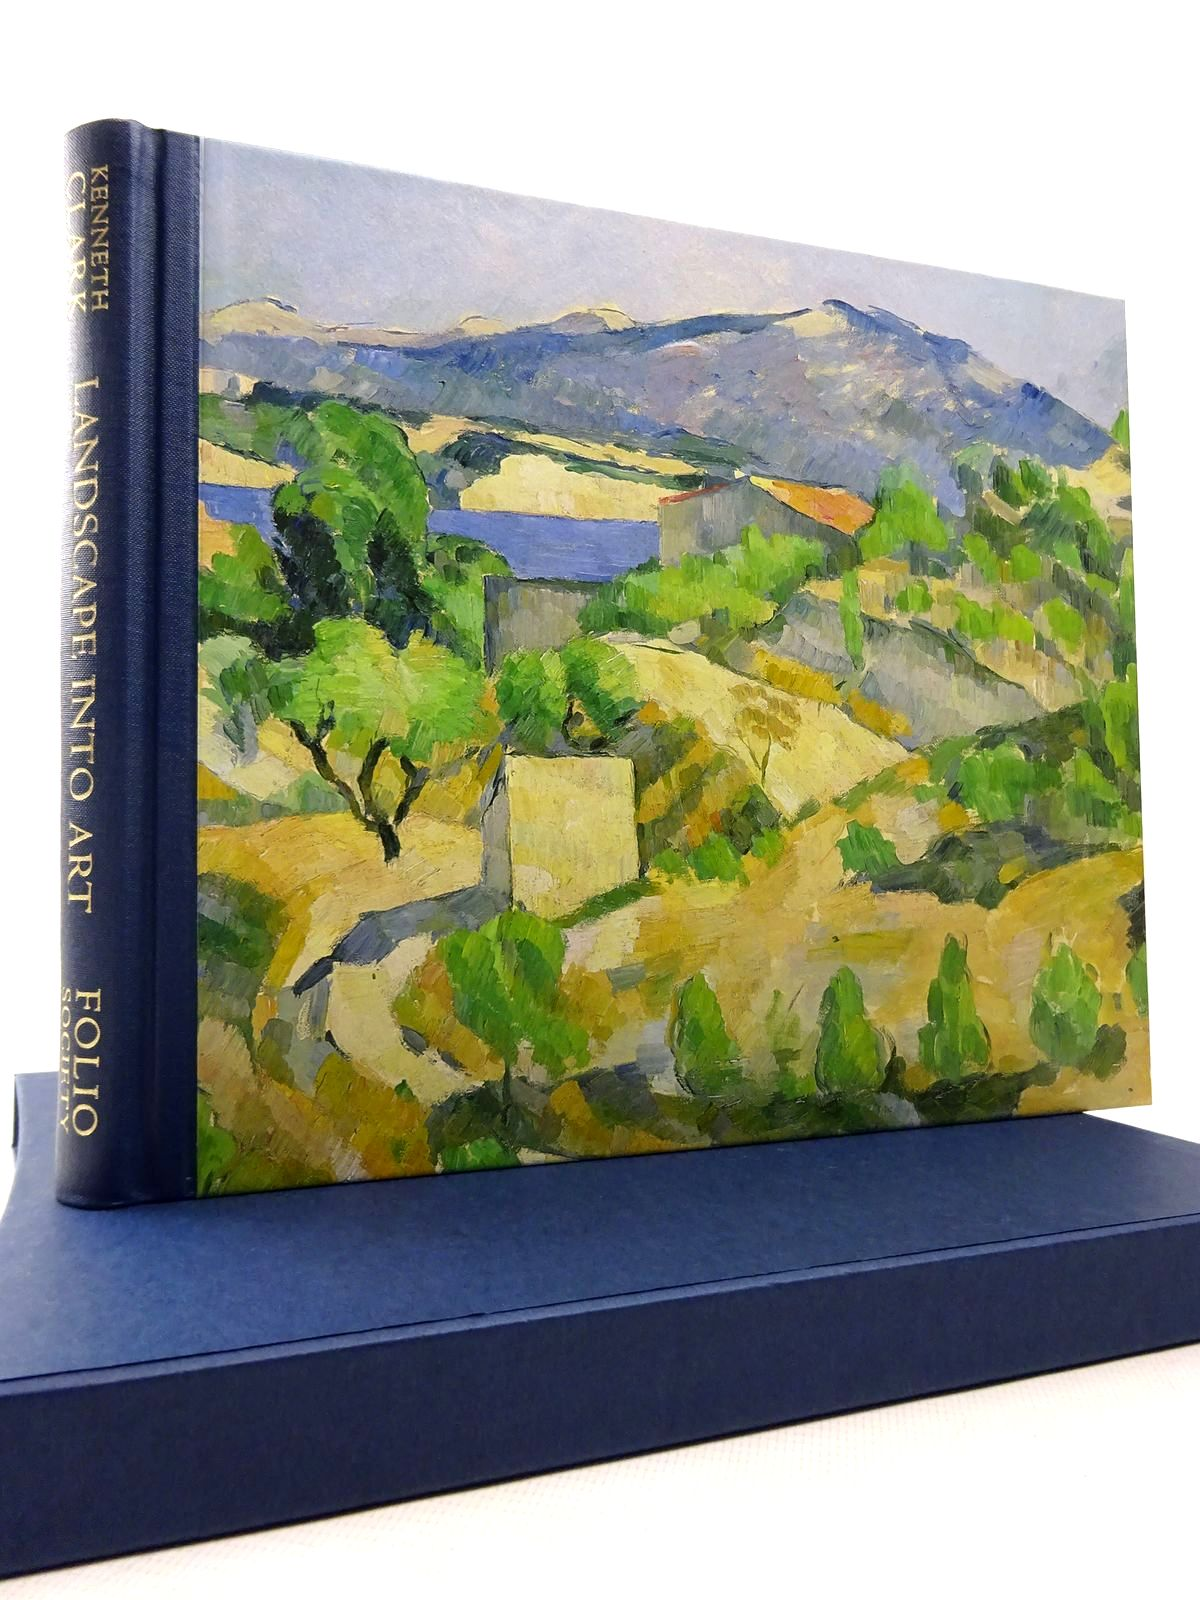 Photo of LANDSCAPE INTO ART written by Clark, Kenneth published by Folio Society (STOCK CODE: 1815560)  for sale by Stella & Rose's Books